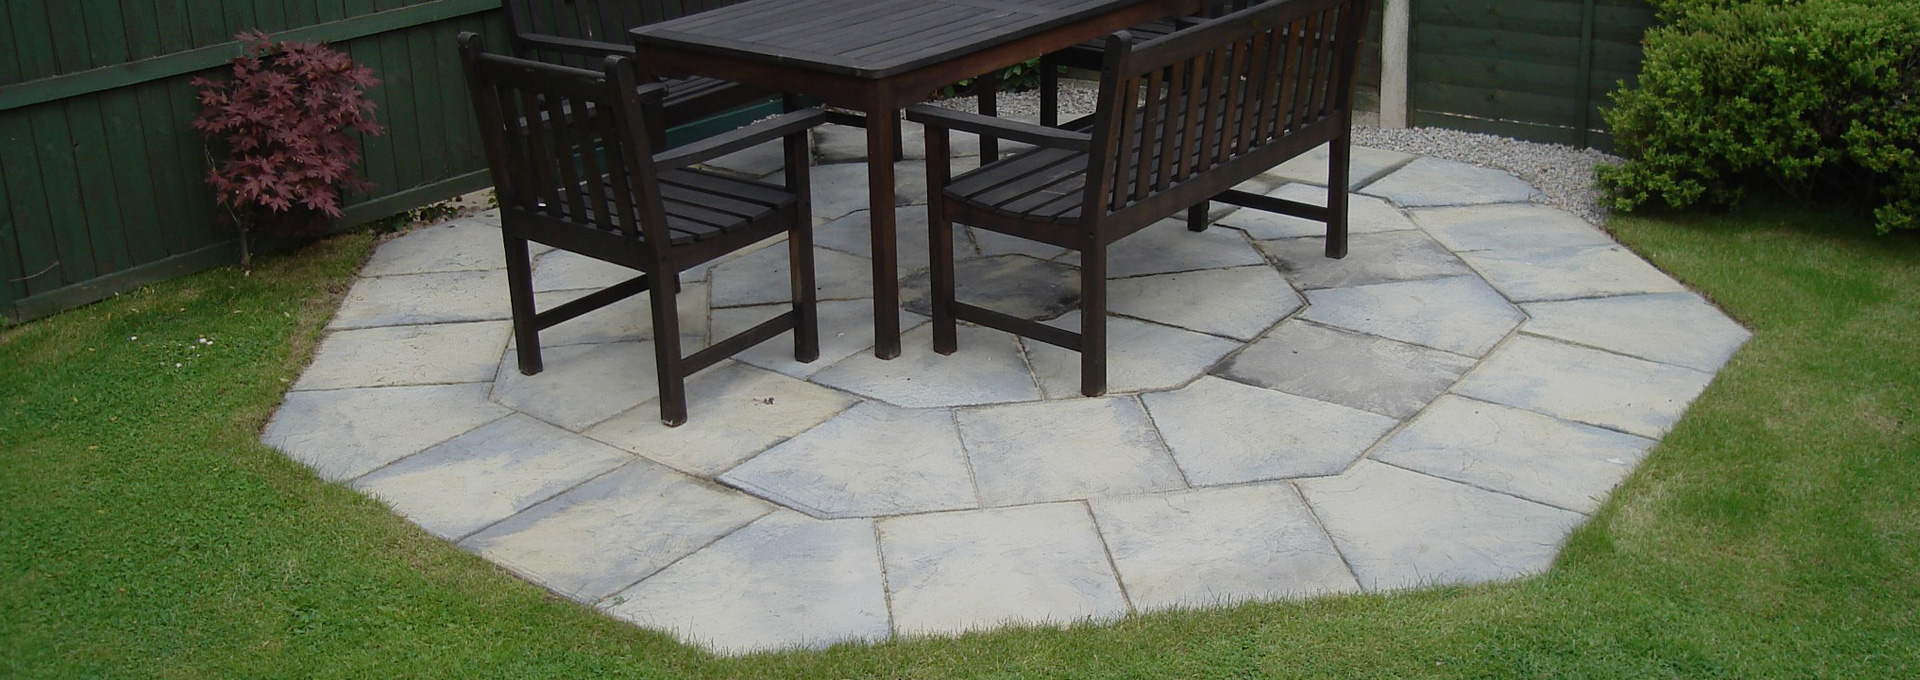 Heptagonal patio fitting project in Hinckley.